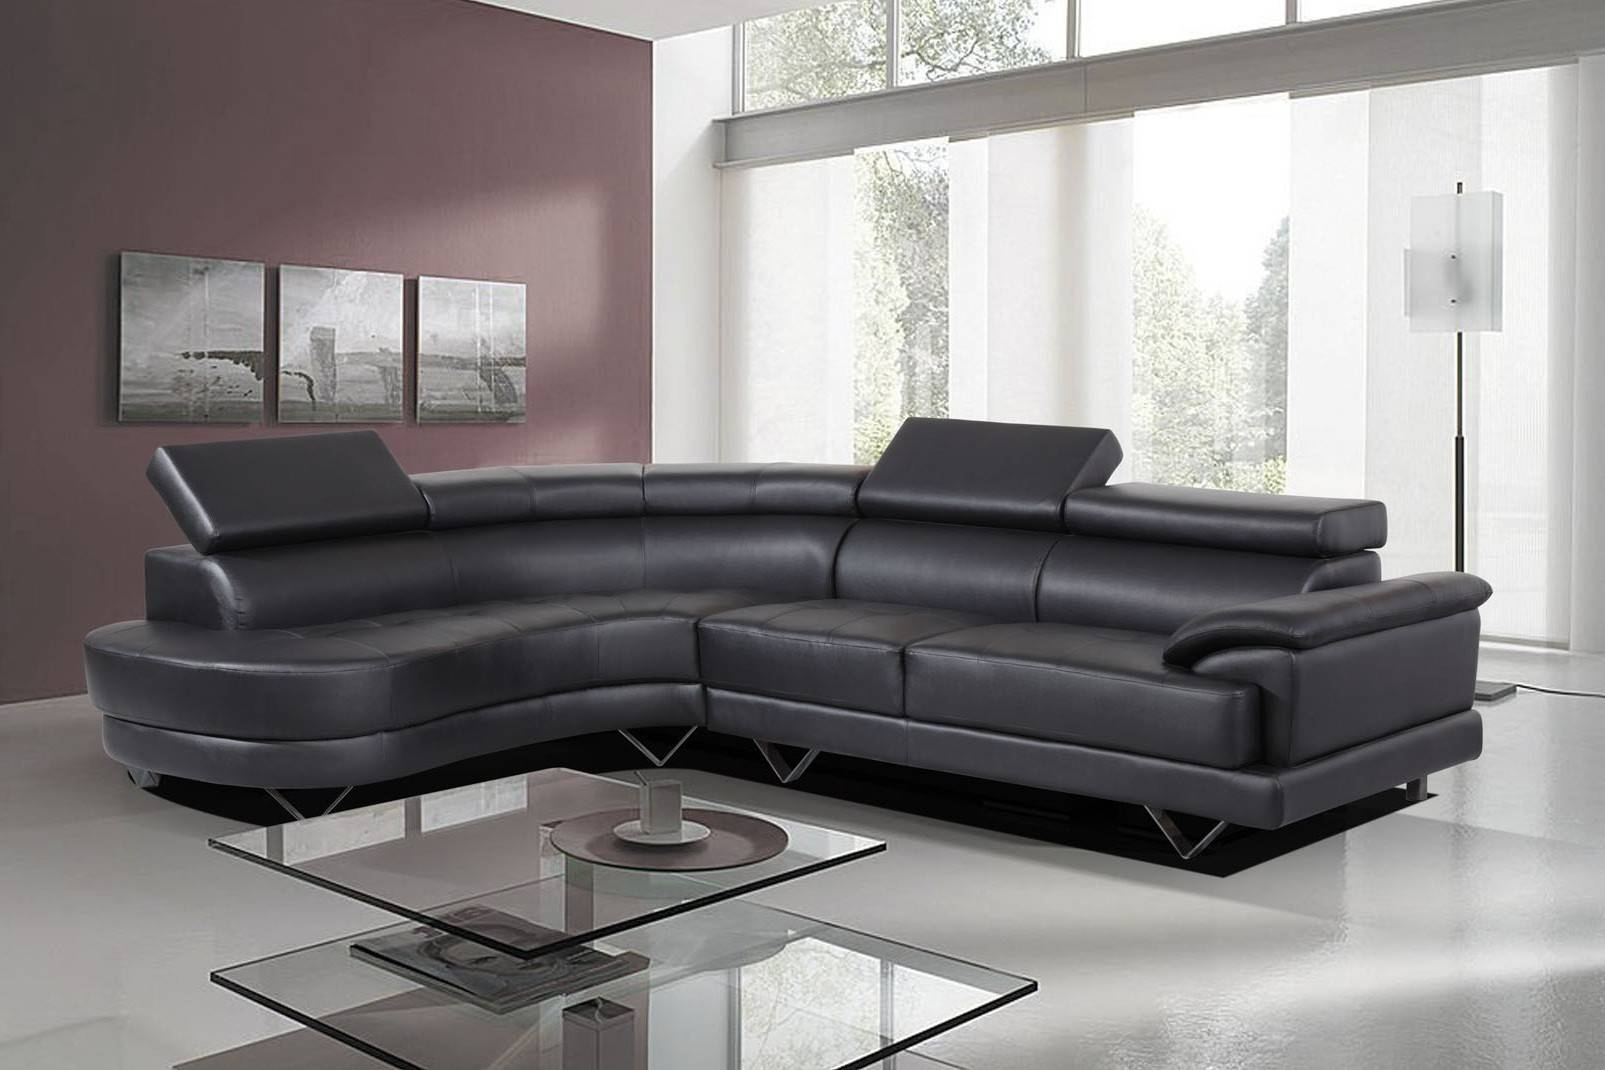 Leather Corner Sofa Uk | Tehranmix Decoration pertaining to White Leather Corner Sofa (Image 15 of 30)